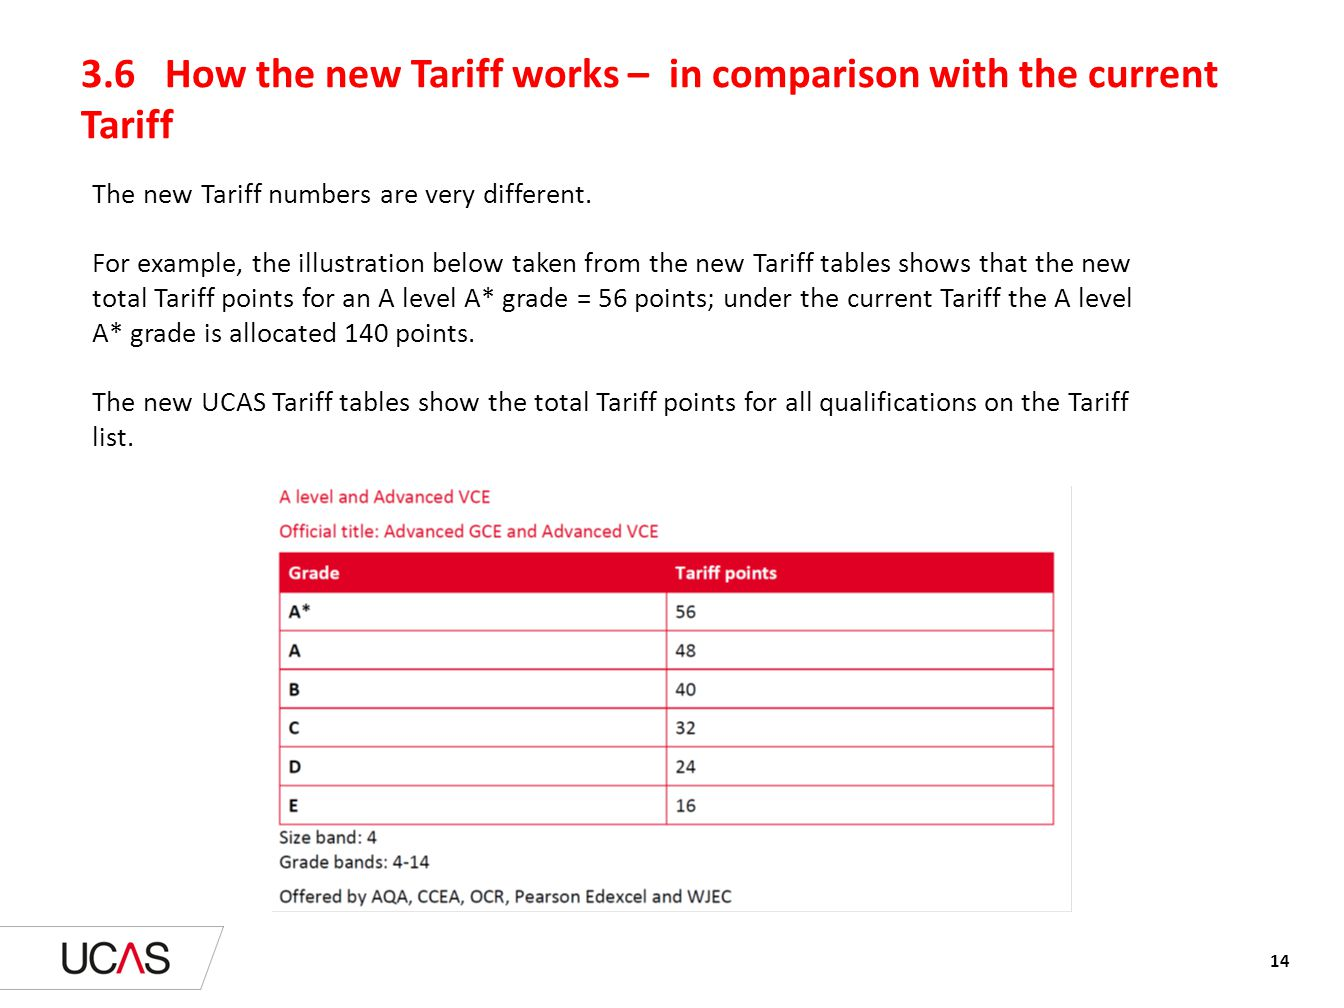 3.6 How the new Tariff works – in comparison with the current Tariff